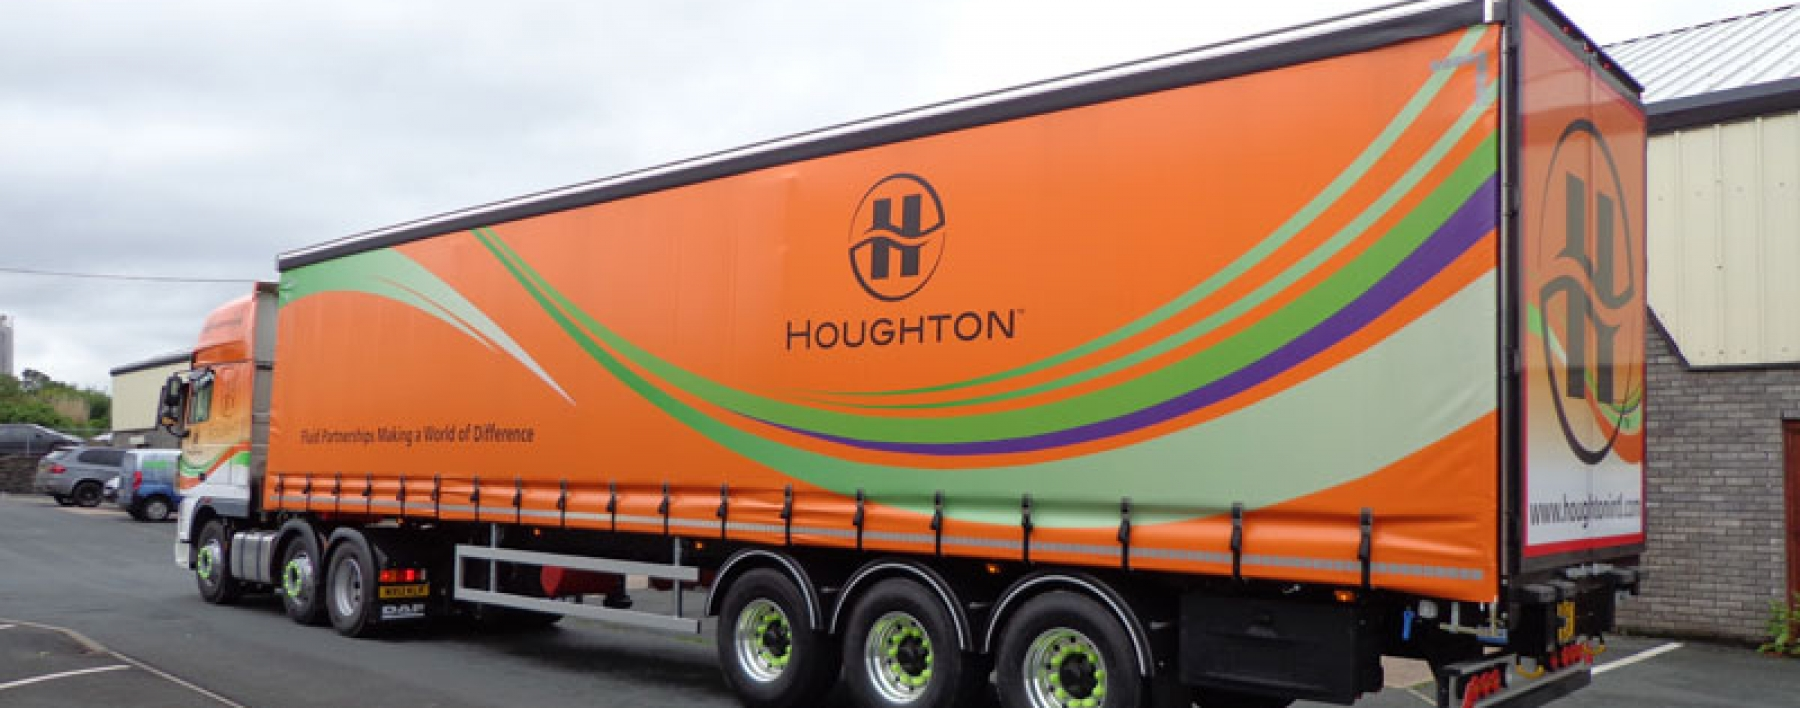 Houghton Oils vehicle livery by Ast Transport Branding